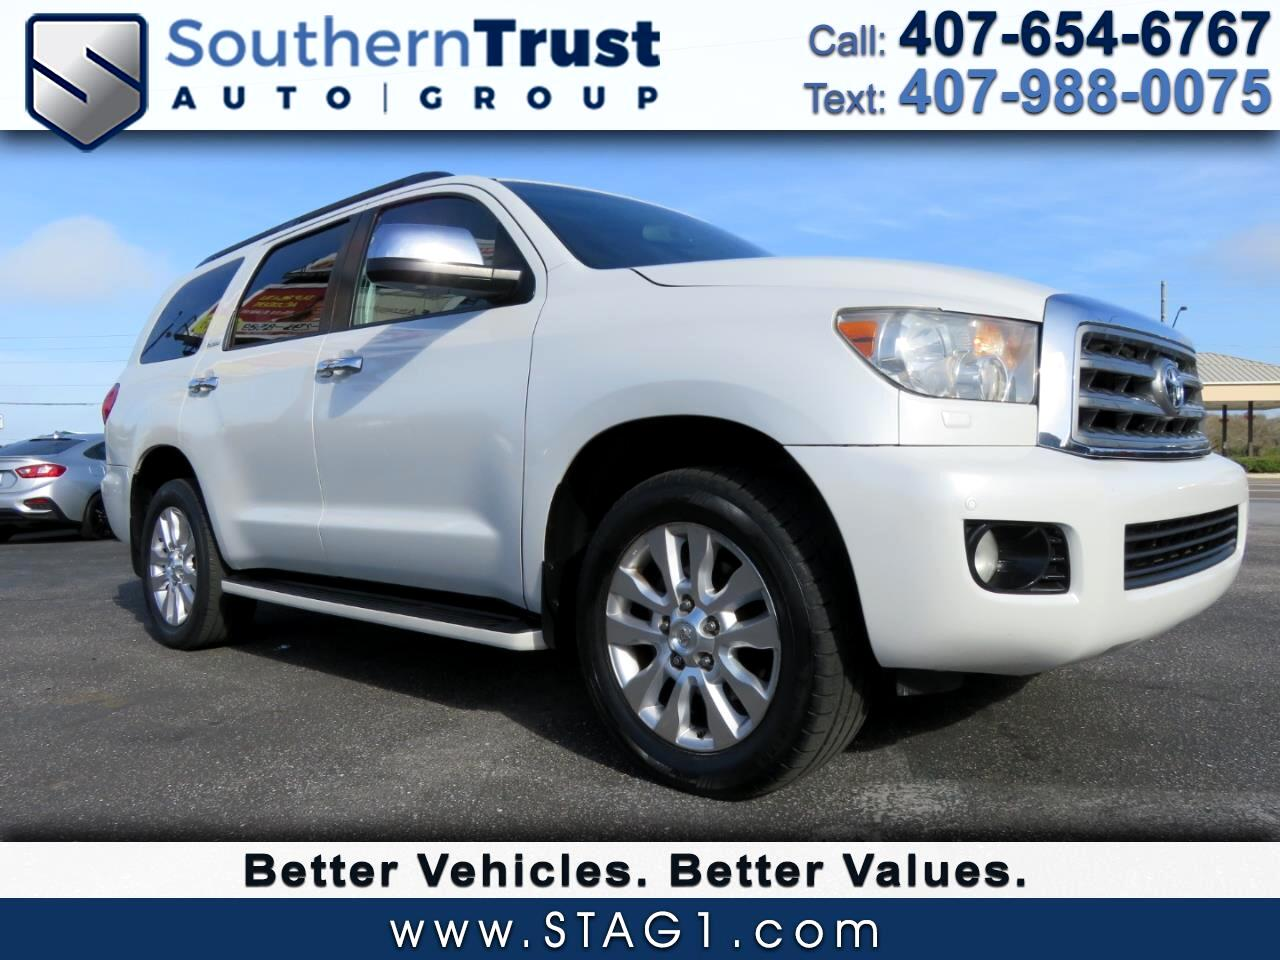 Toyota Sequoia RWD 4dr LV8 6-Spd AT Platinum (Natl) 2008